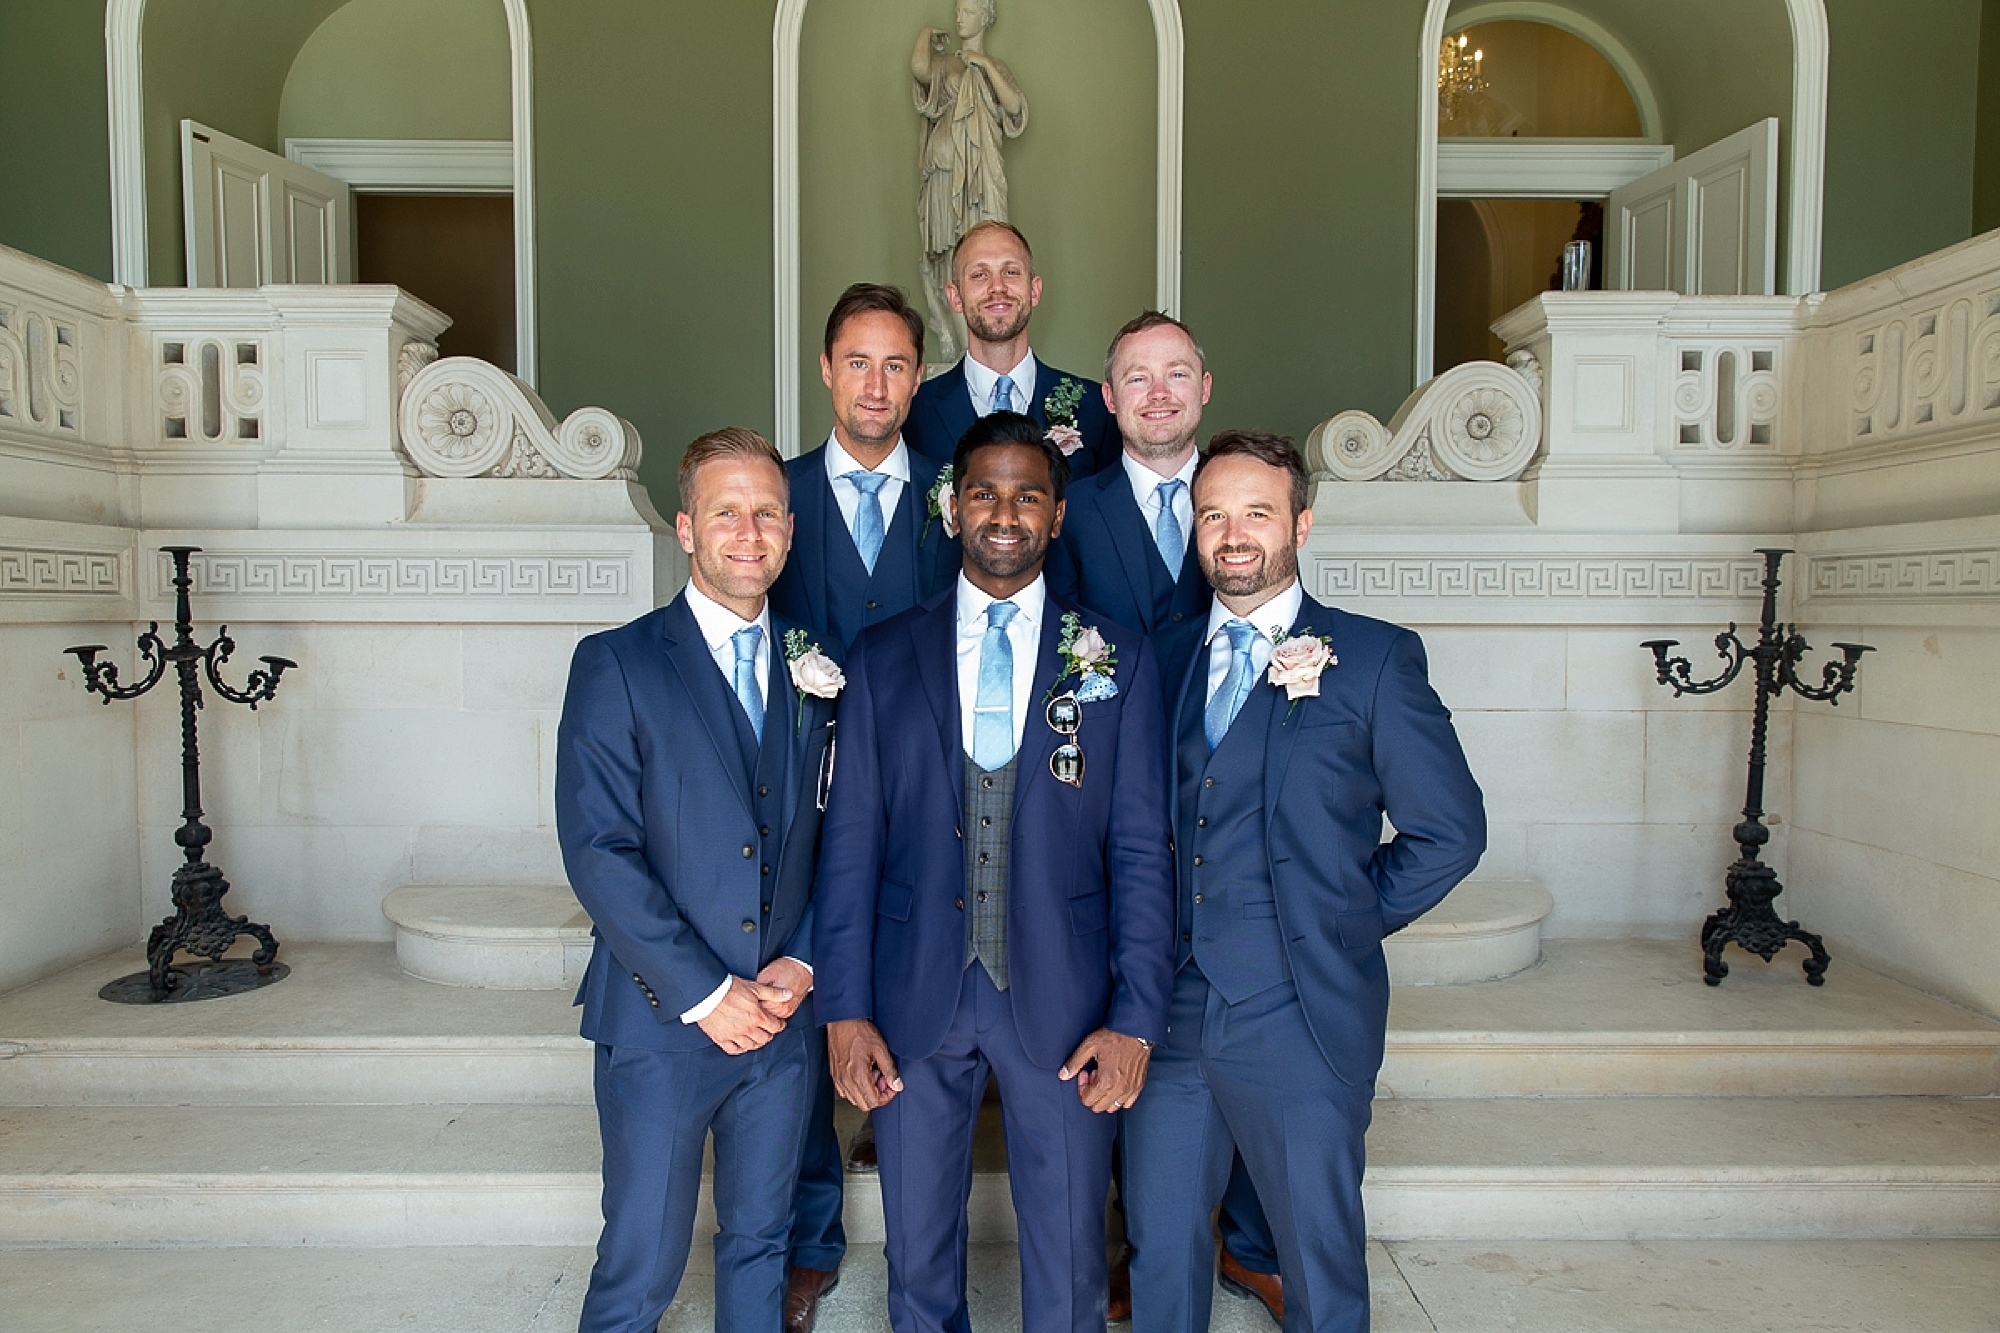 Groom and groomsmen stand in the entrance of Pynes House in Devon wedding